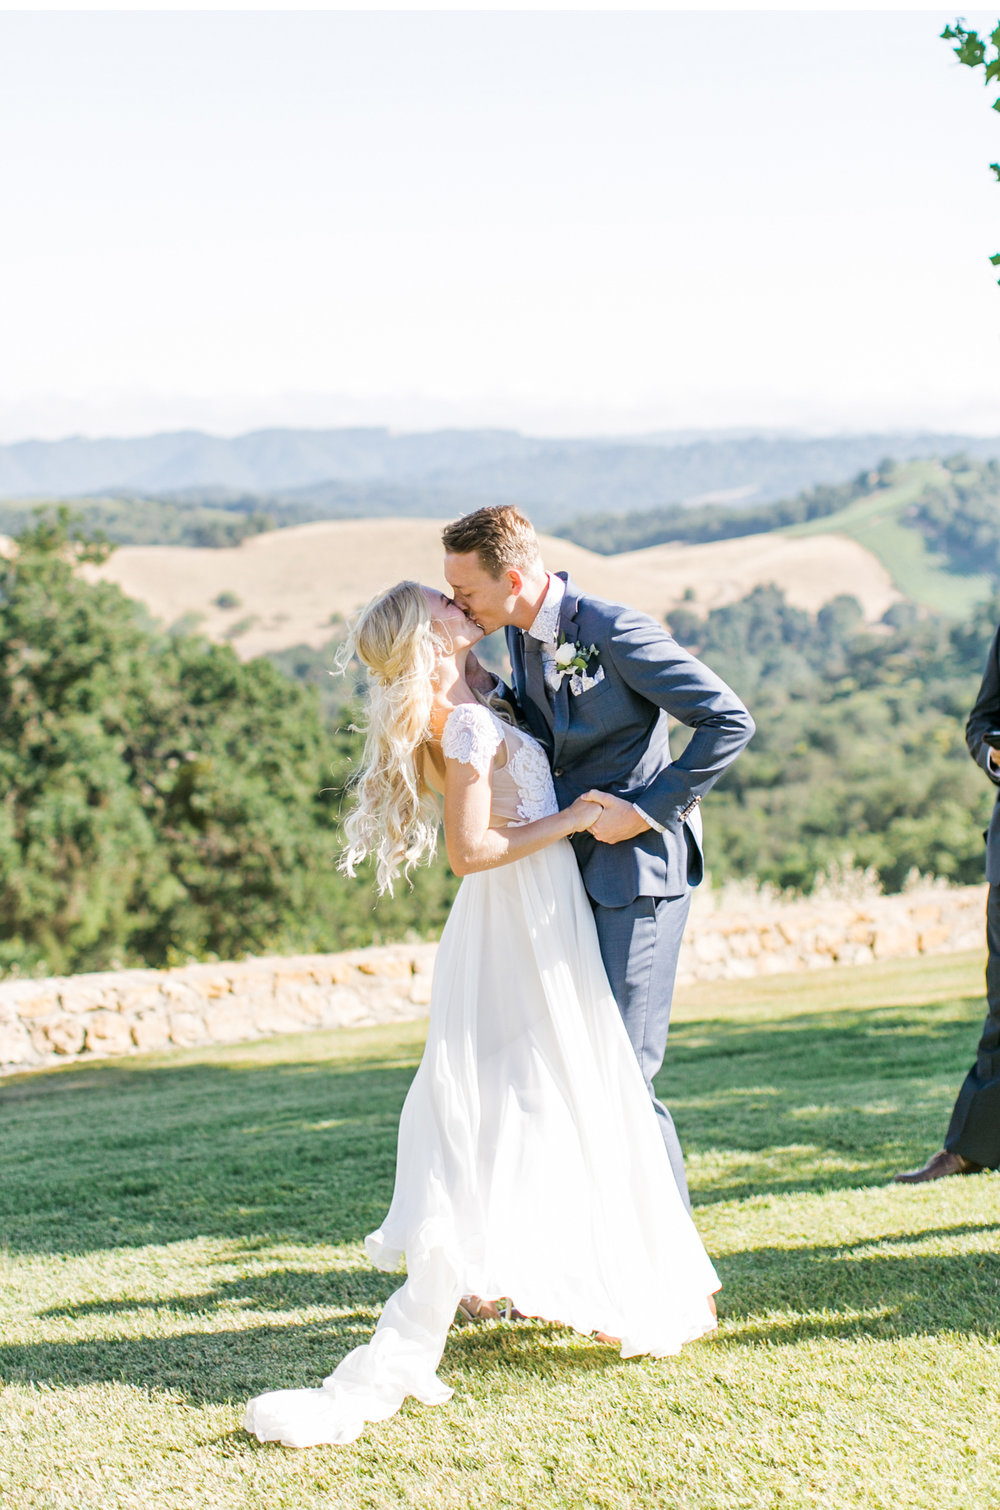 Paso-Robles-Style-Me-Pretty-The-Knot-Wedding-Natalie-Schutt-Photography's-Wedding_11.jpg